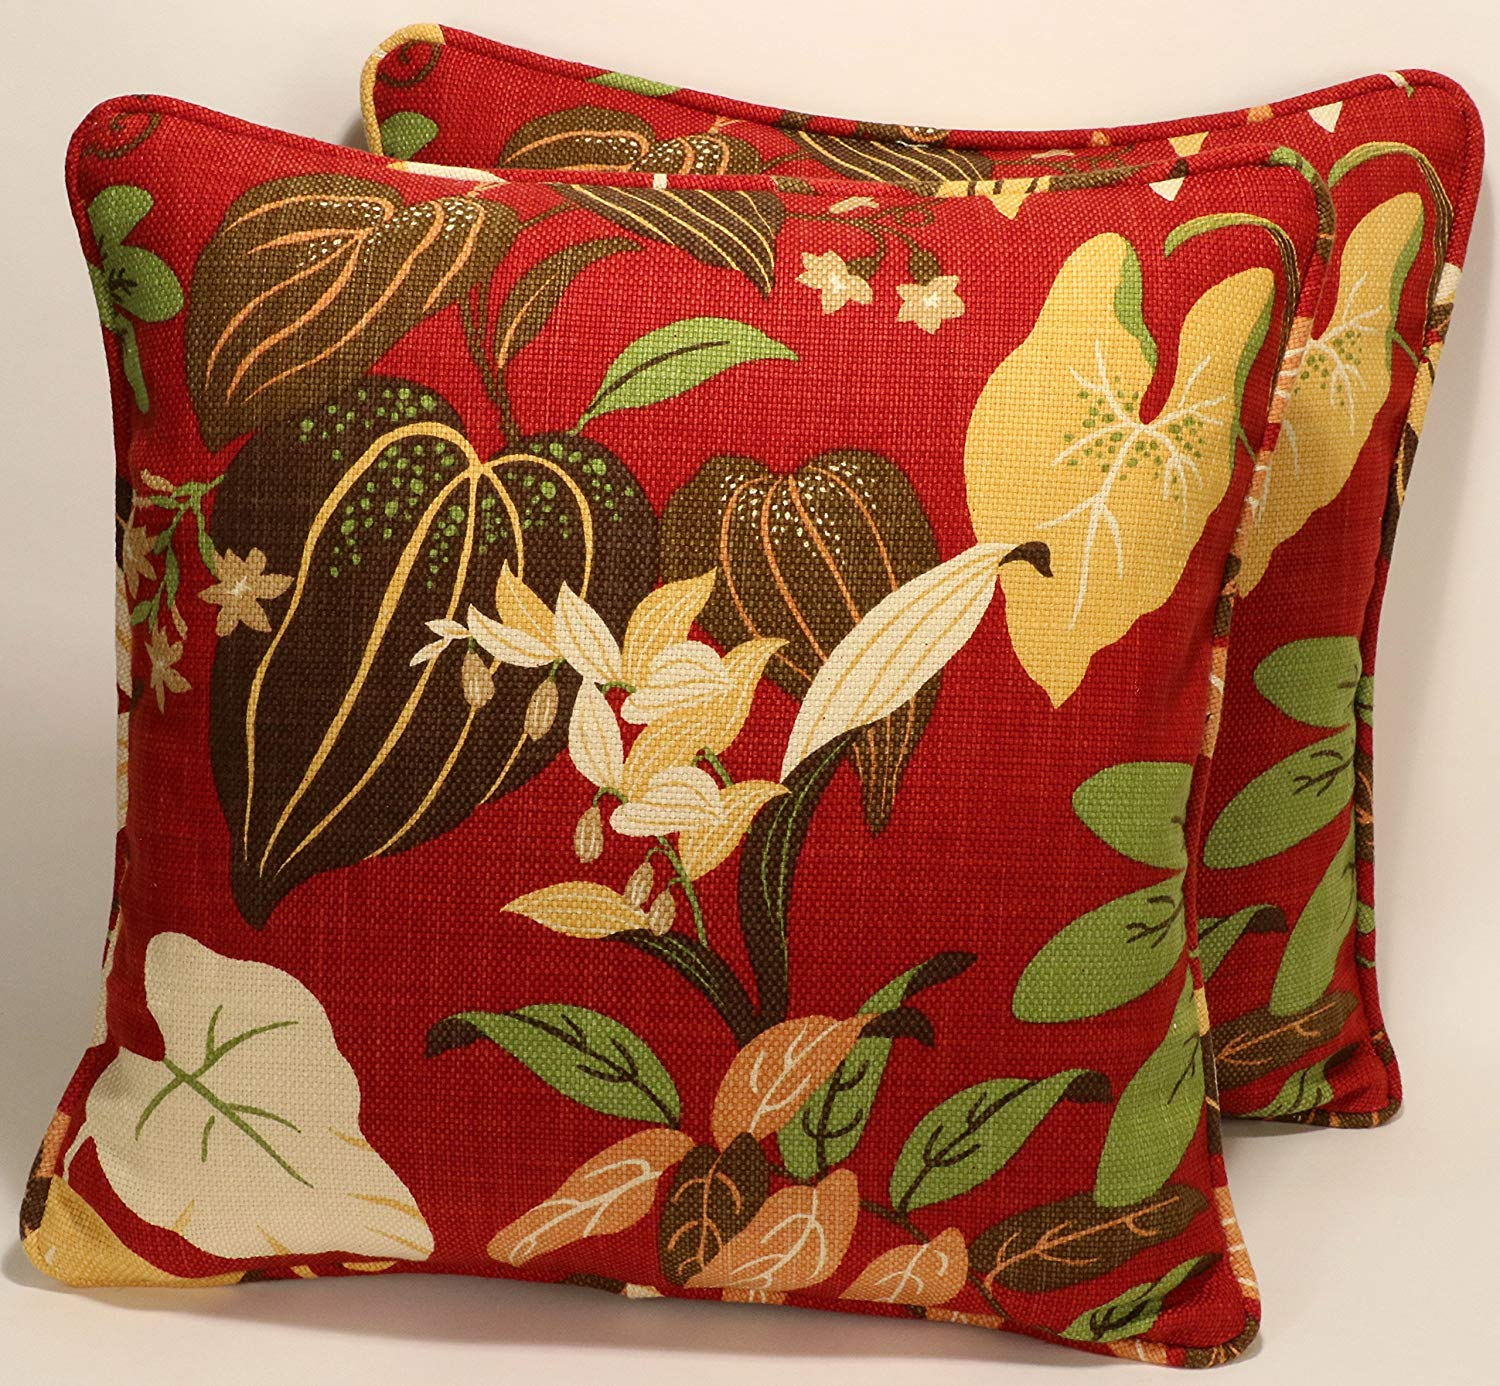 Cheap Red And Brown Throw Pillows Find Red And Brown Throw Pillows